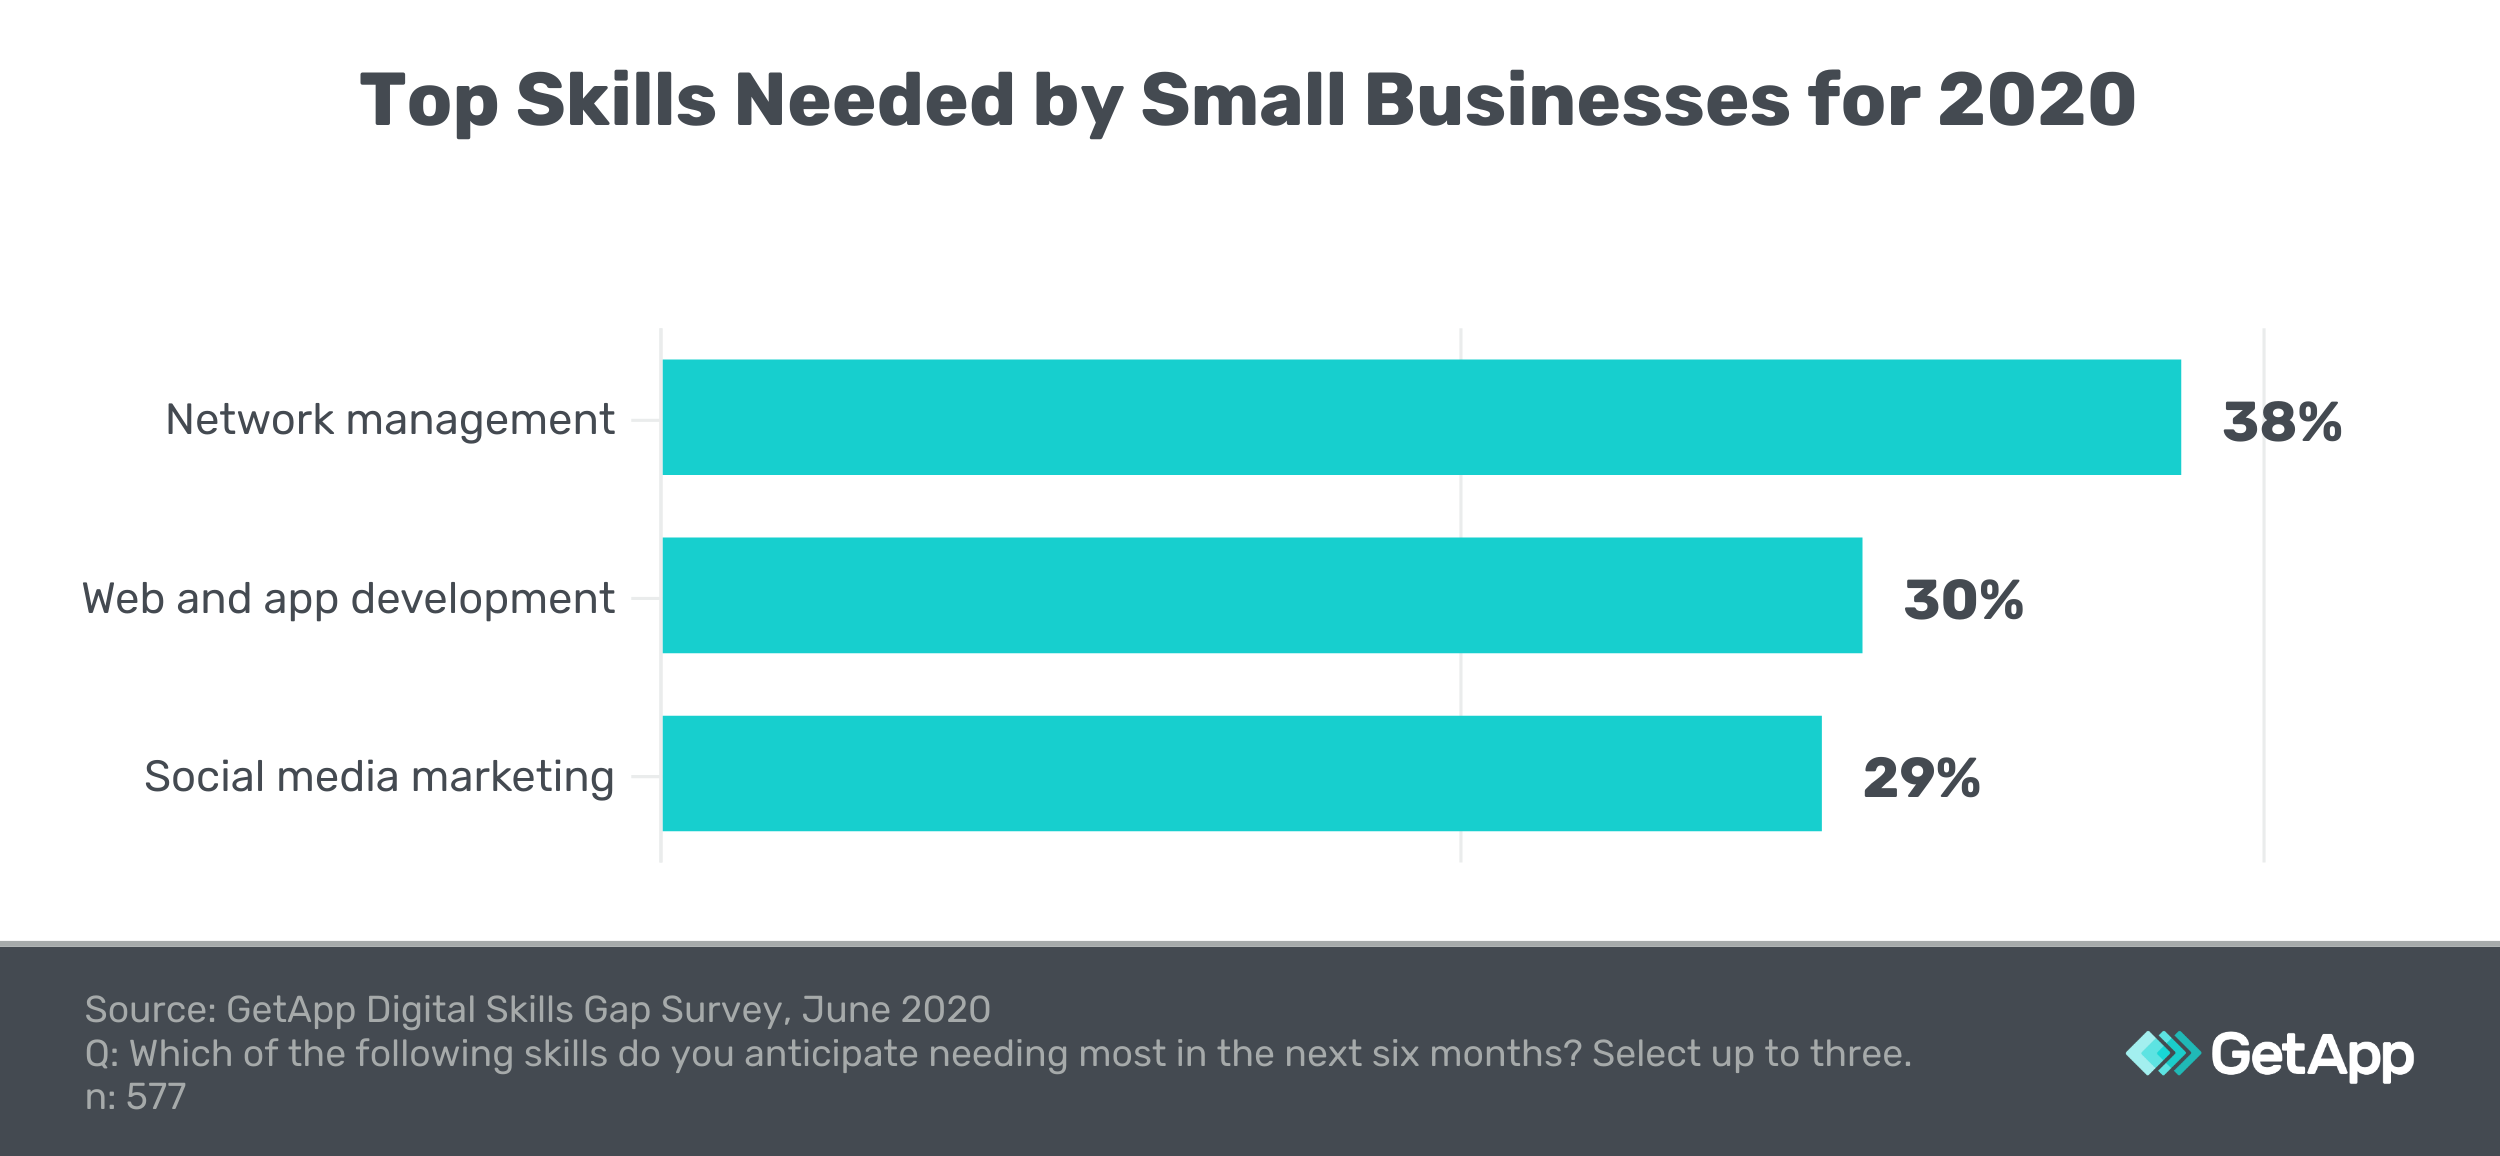 Top skills needed by small businesses in 2020